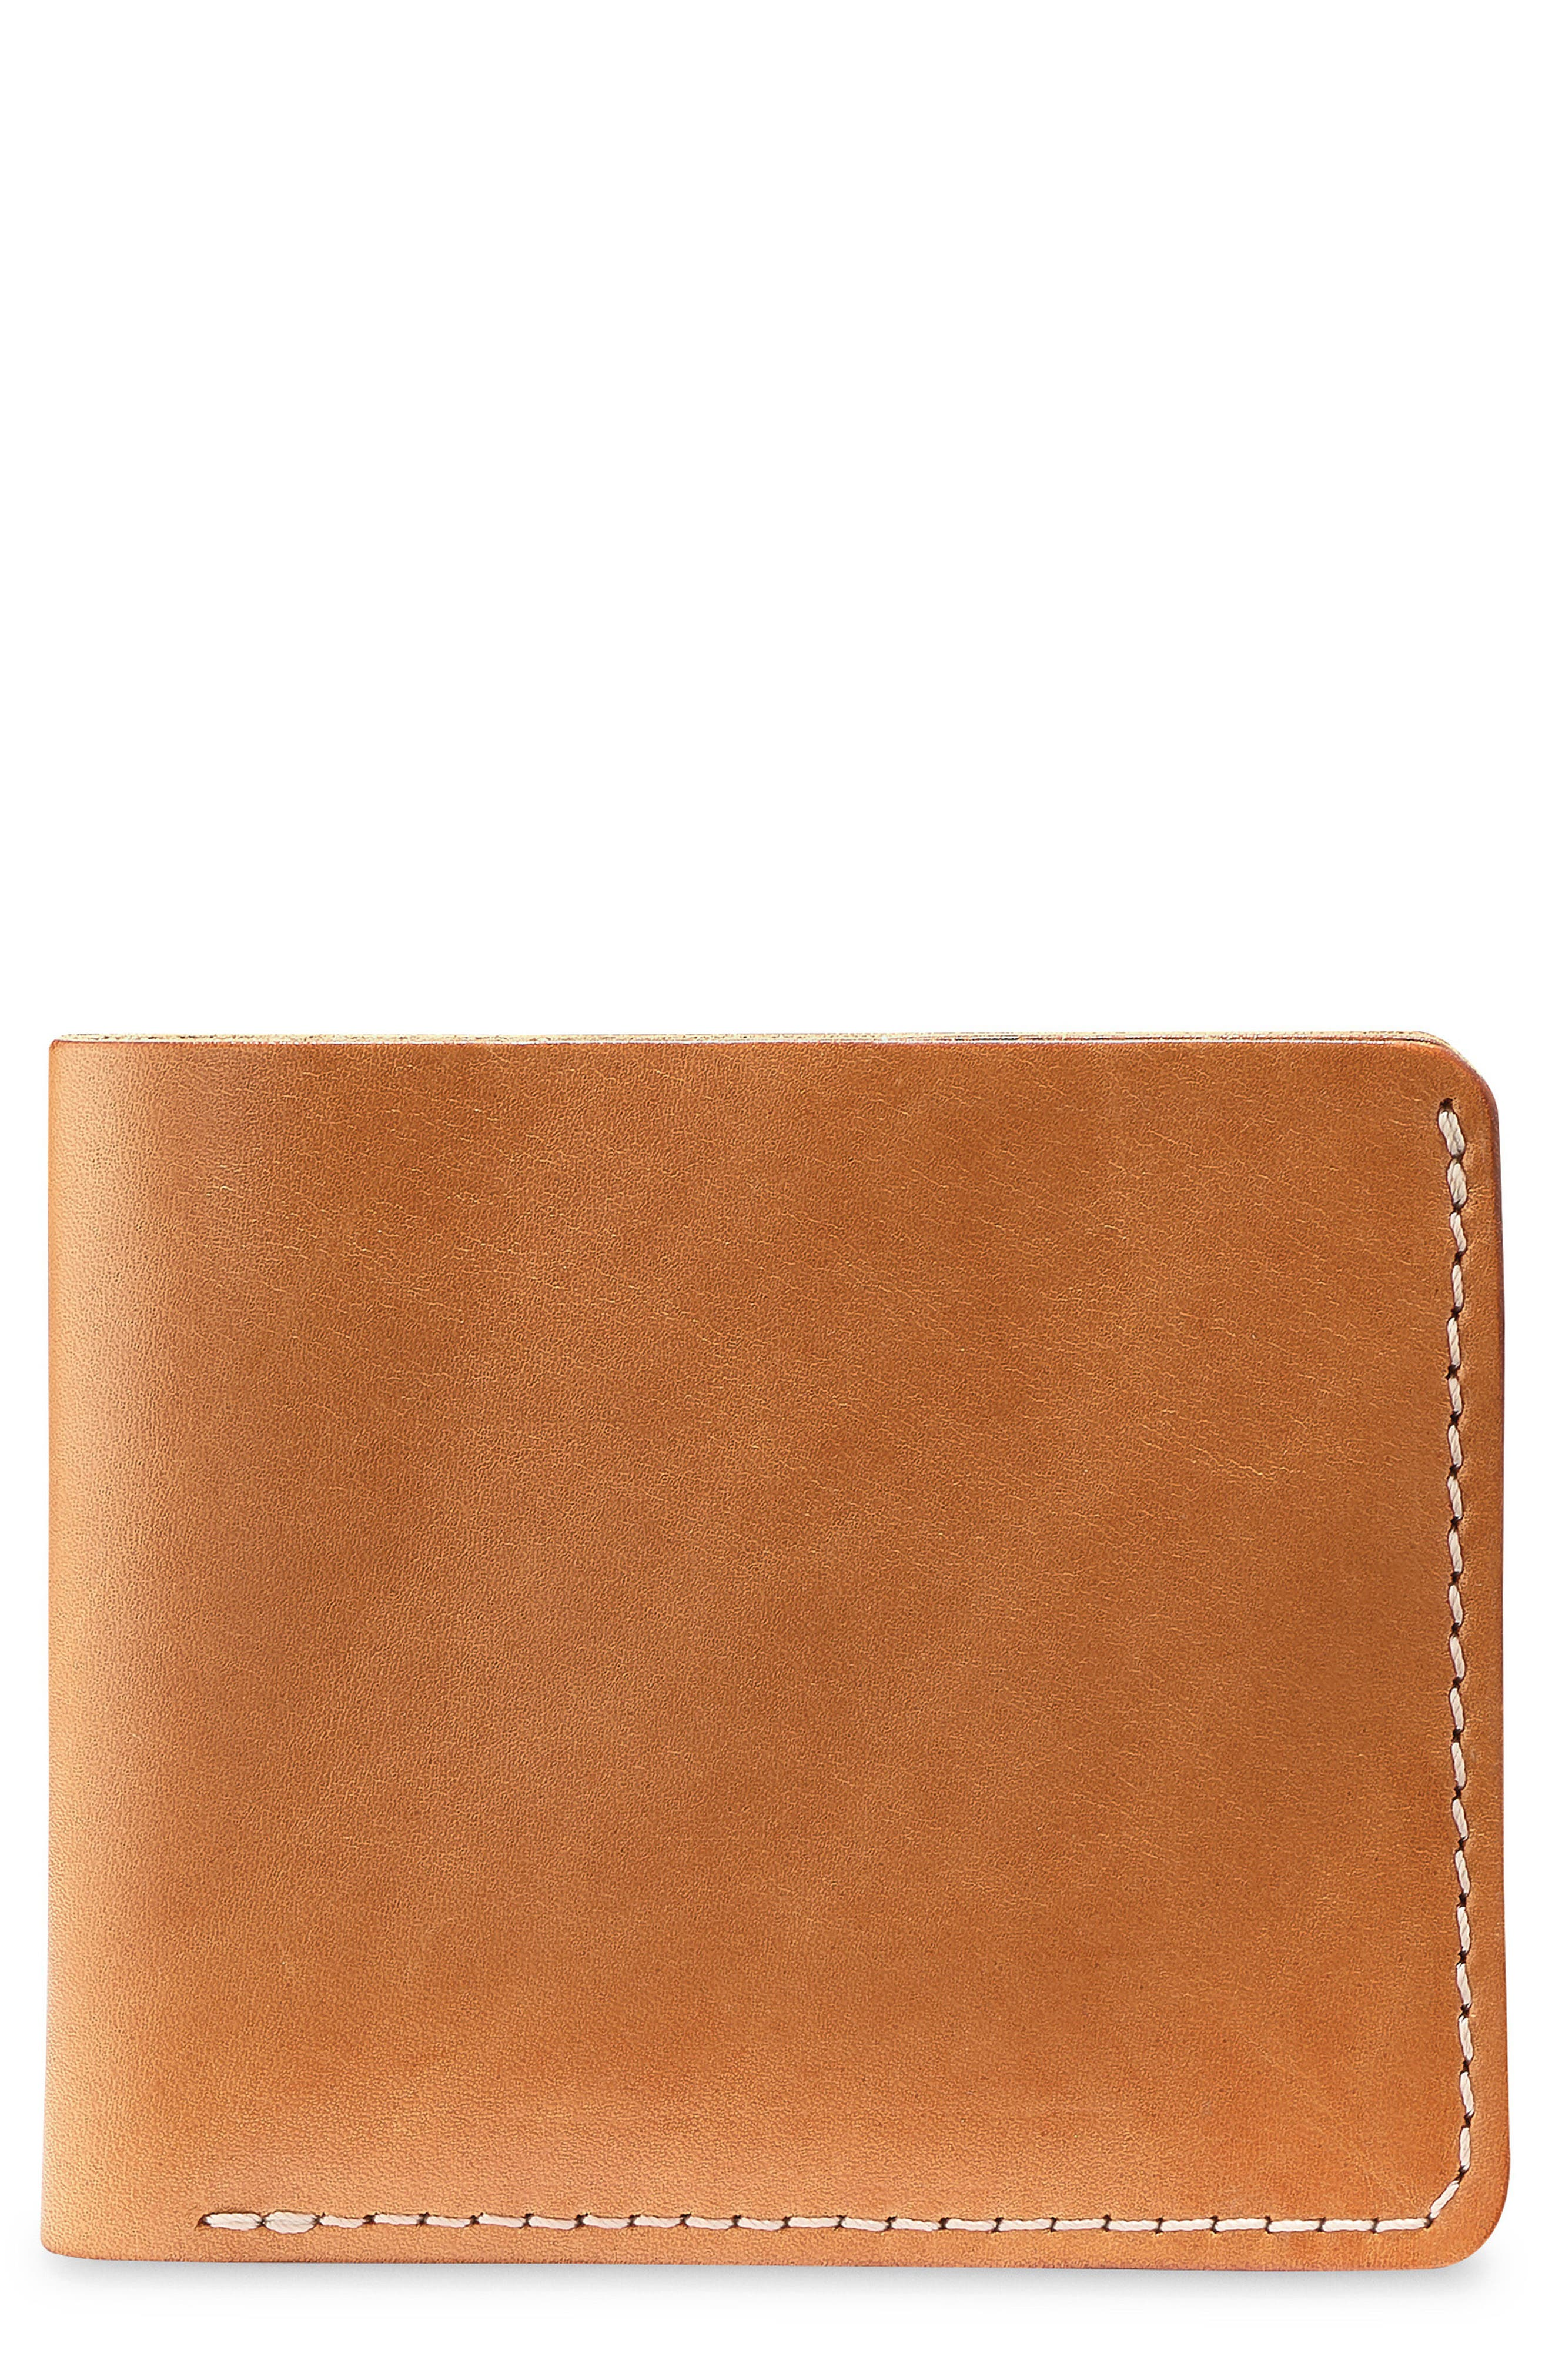 Classic Bifold Leather Wallet, Main, color, TANNED VEGETABLE